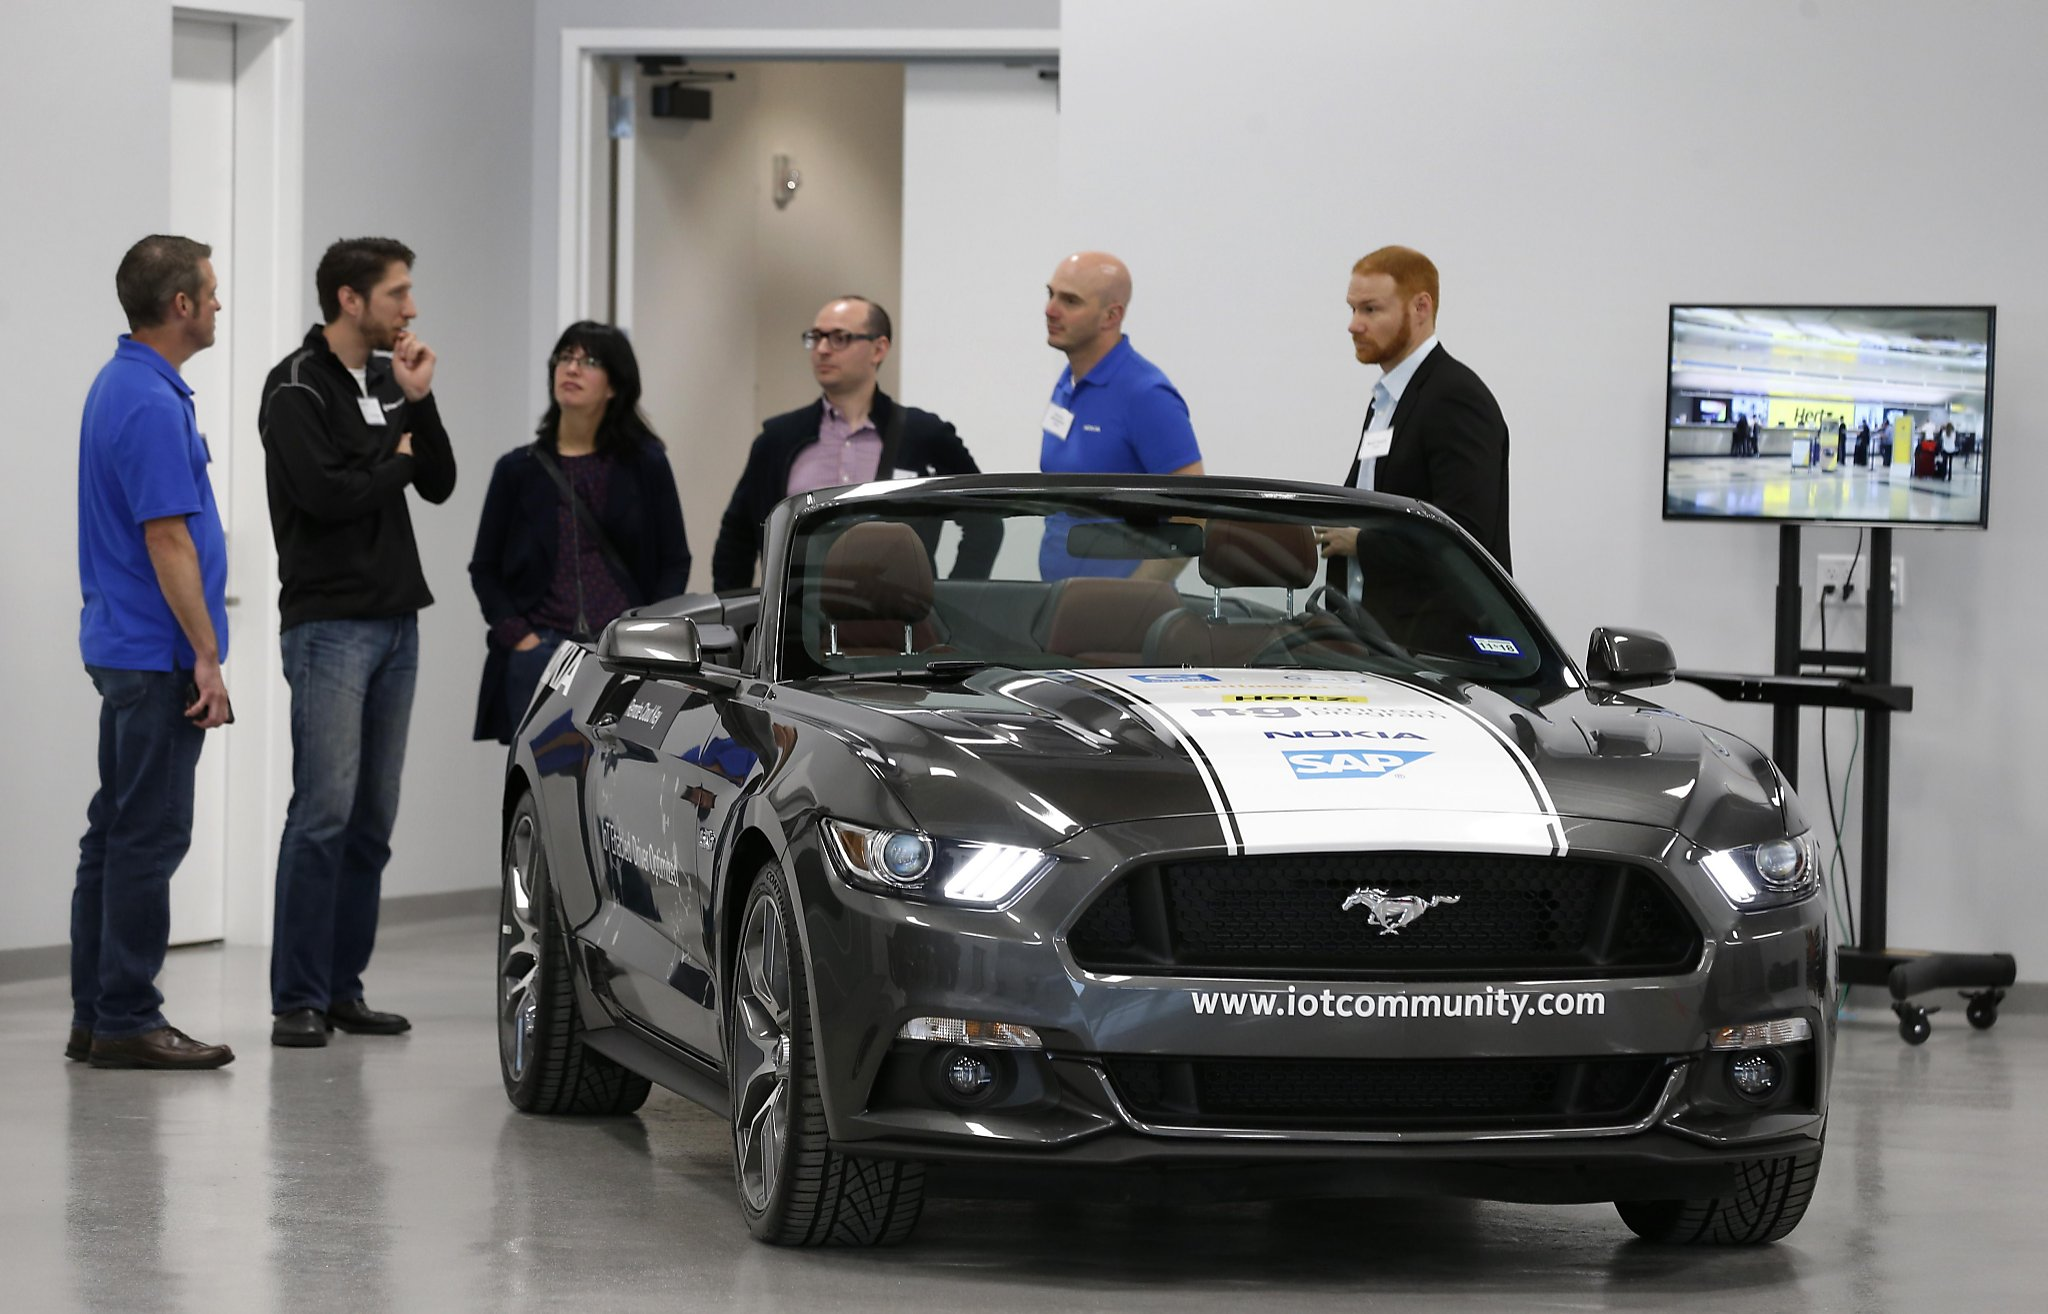 Continental 145 year old auto firm opens San Jose lab SFGate